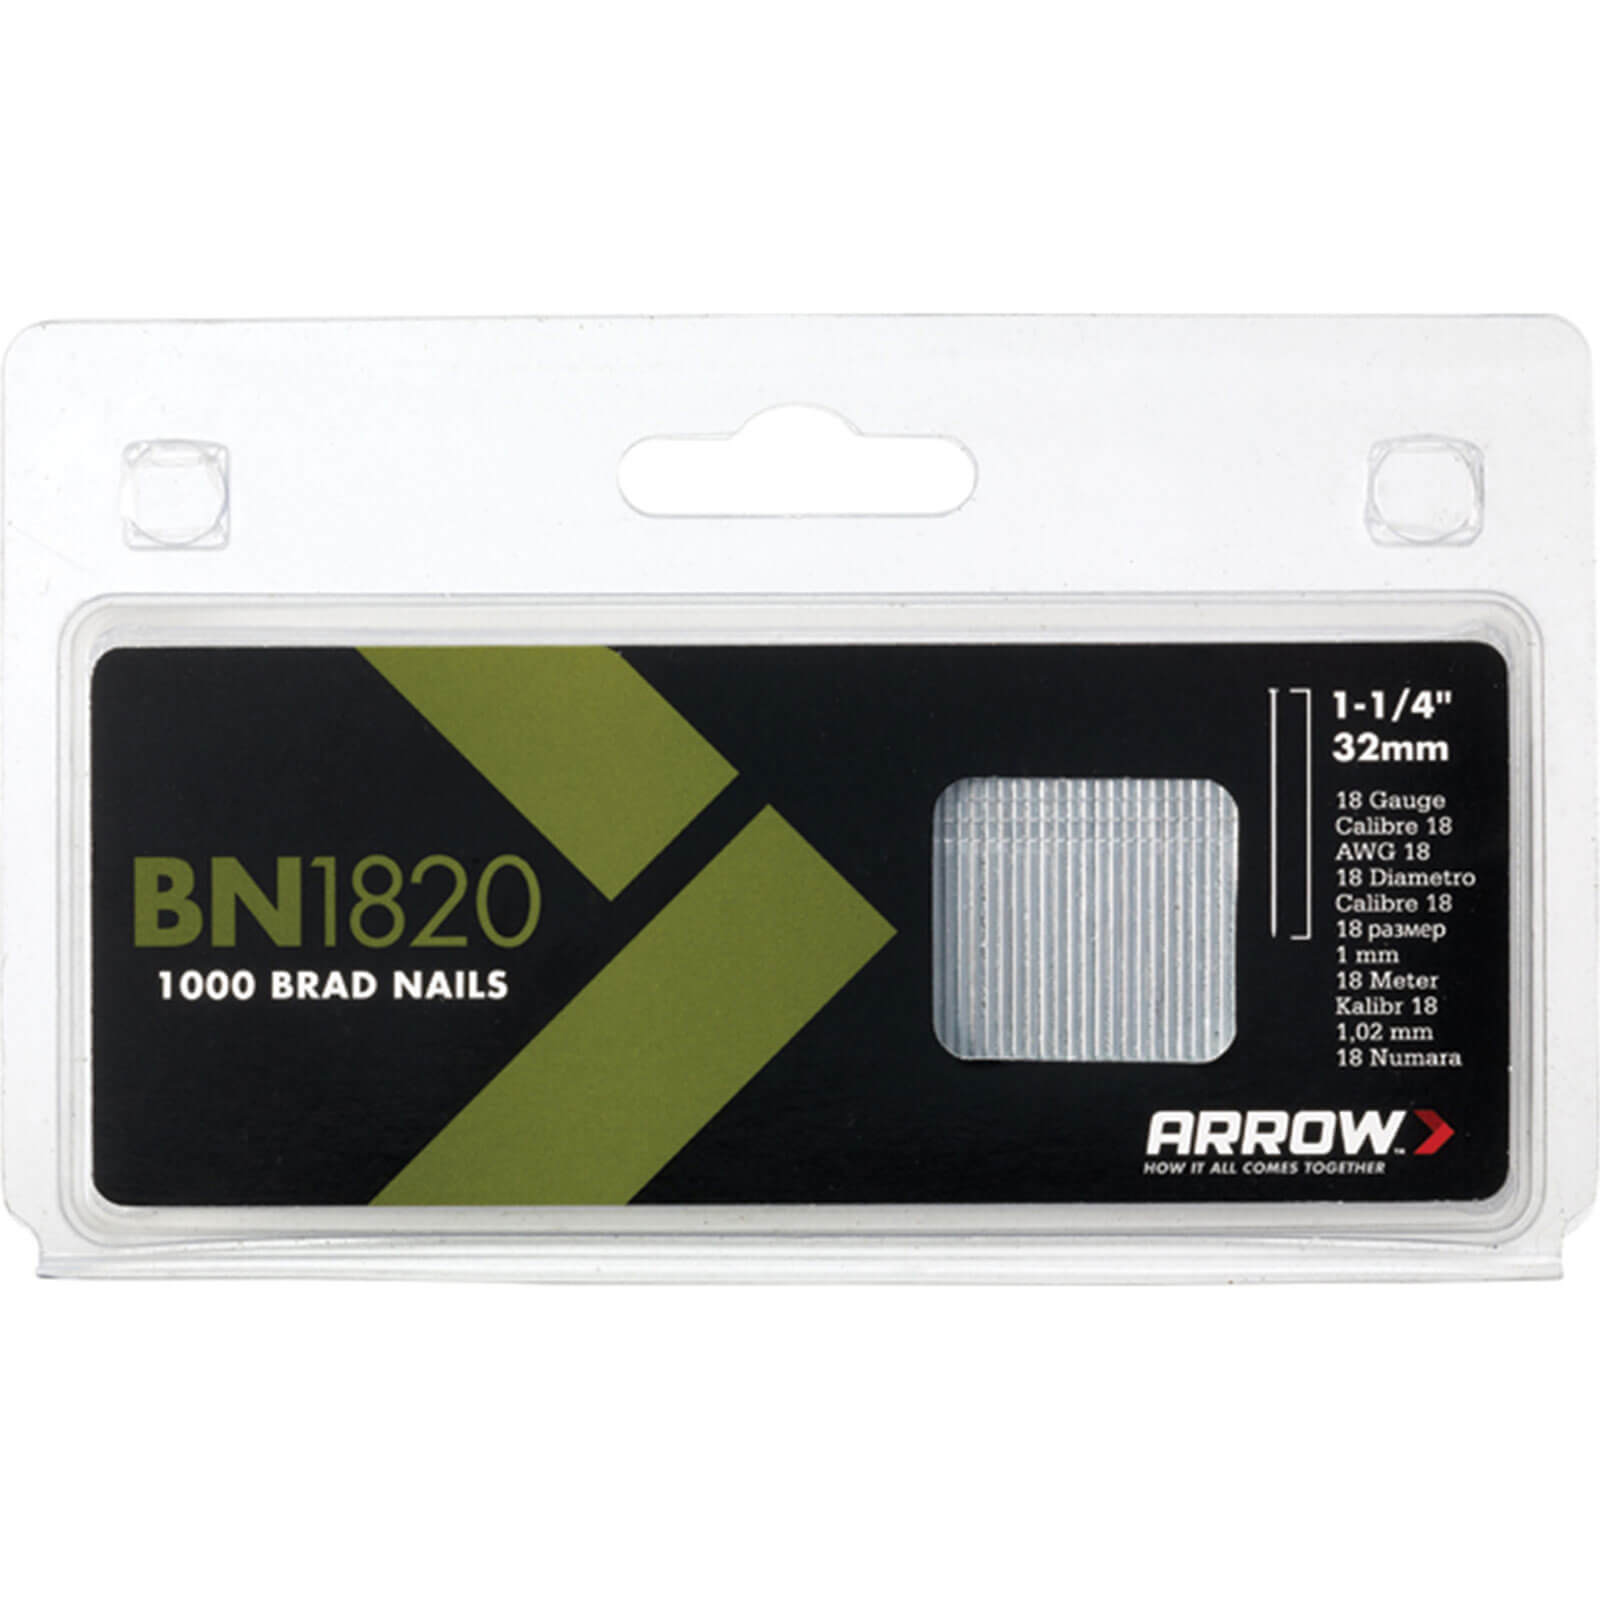 Compare prices for Arrow 18 Gauge Brad Nails 20mm Pack of 1000